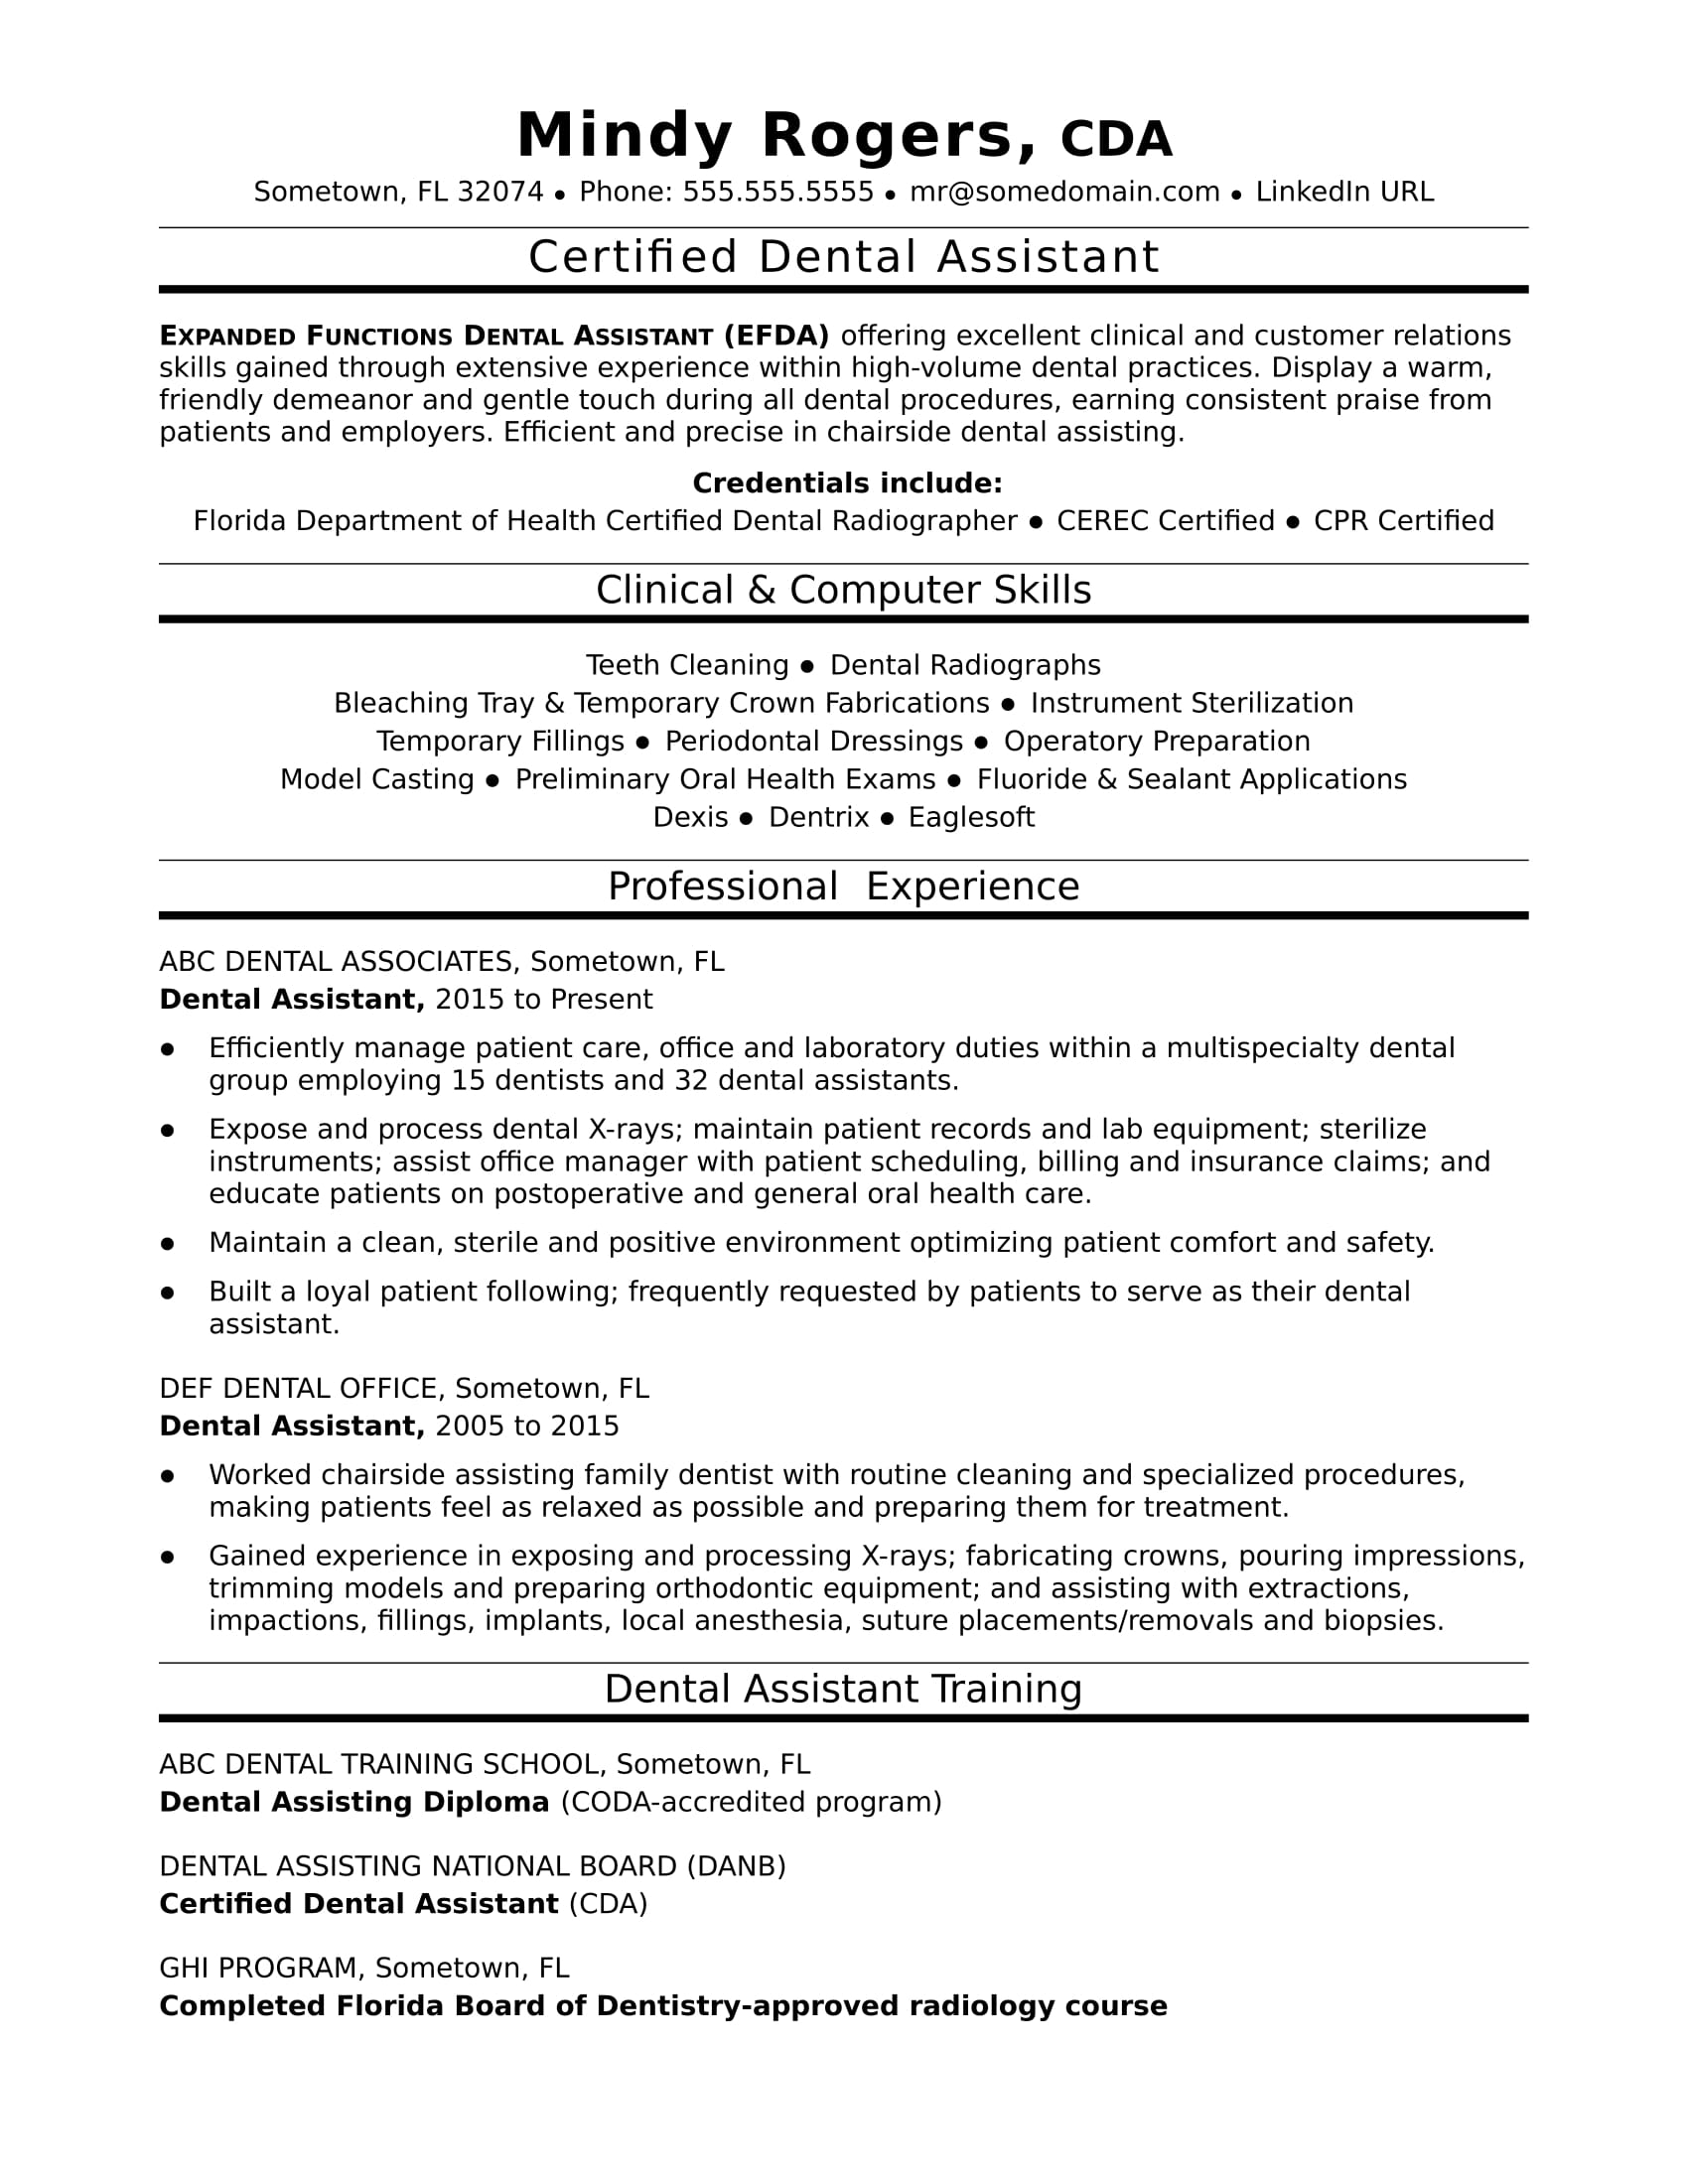 Charming Dental Assistant Resume Sample Regarding Dental Assistant Resume Samples